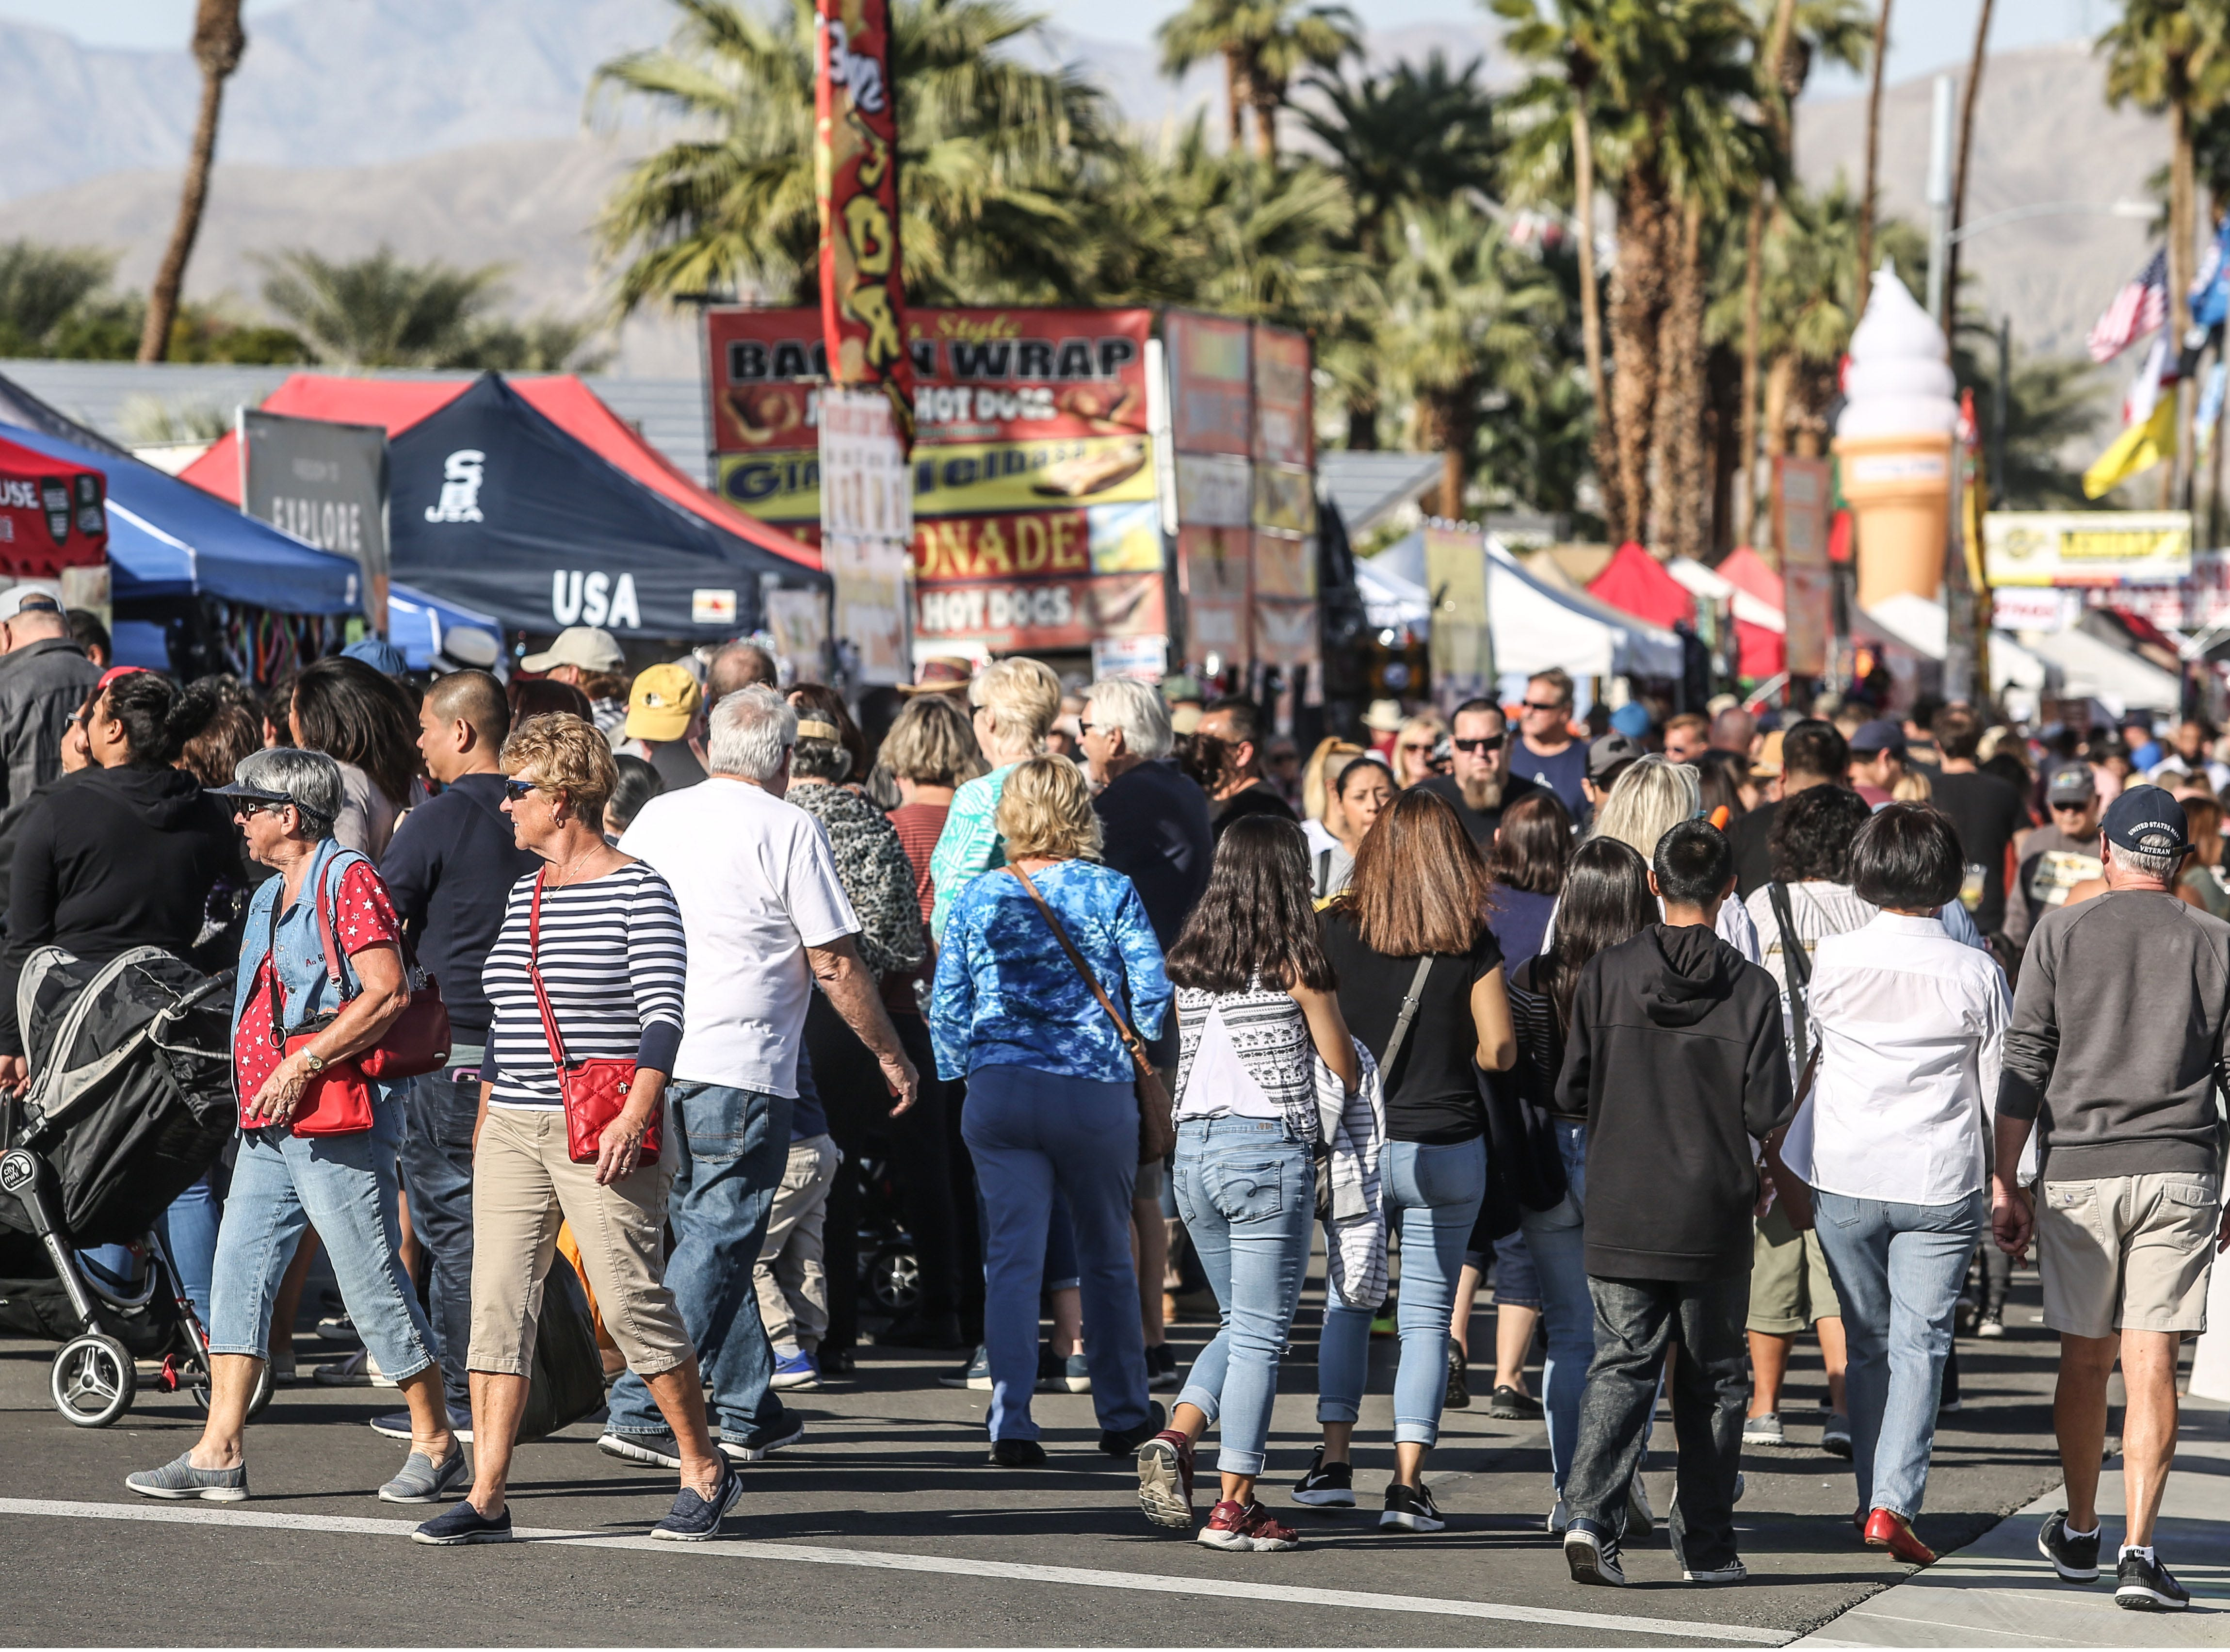 Tamale fans on Saturday, December 1, 2018 during annual Indio Tamales Festival.